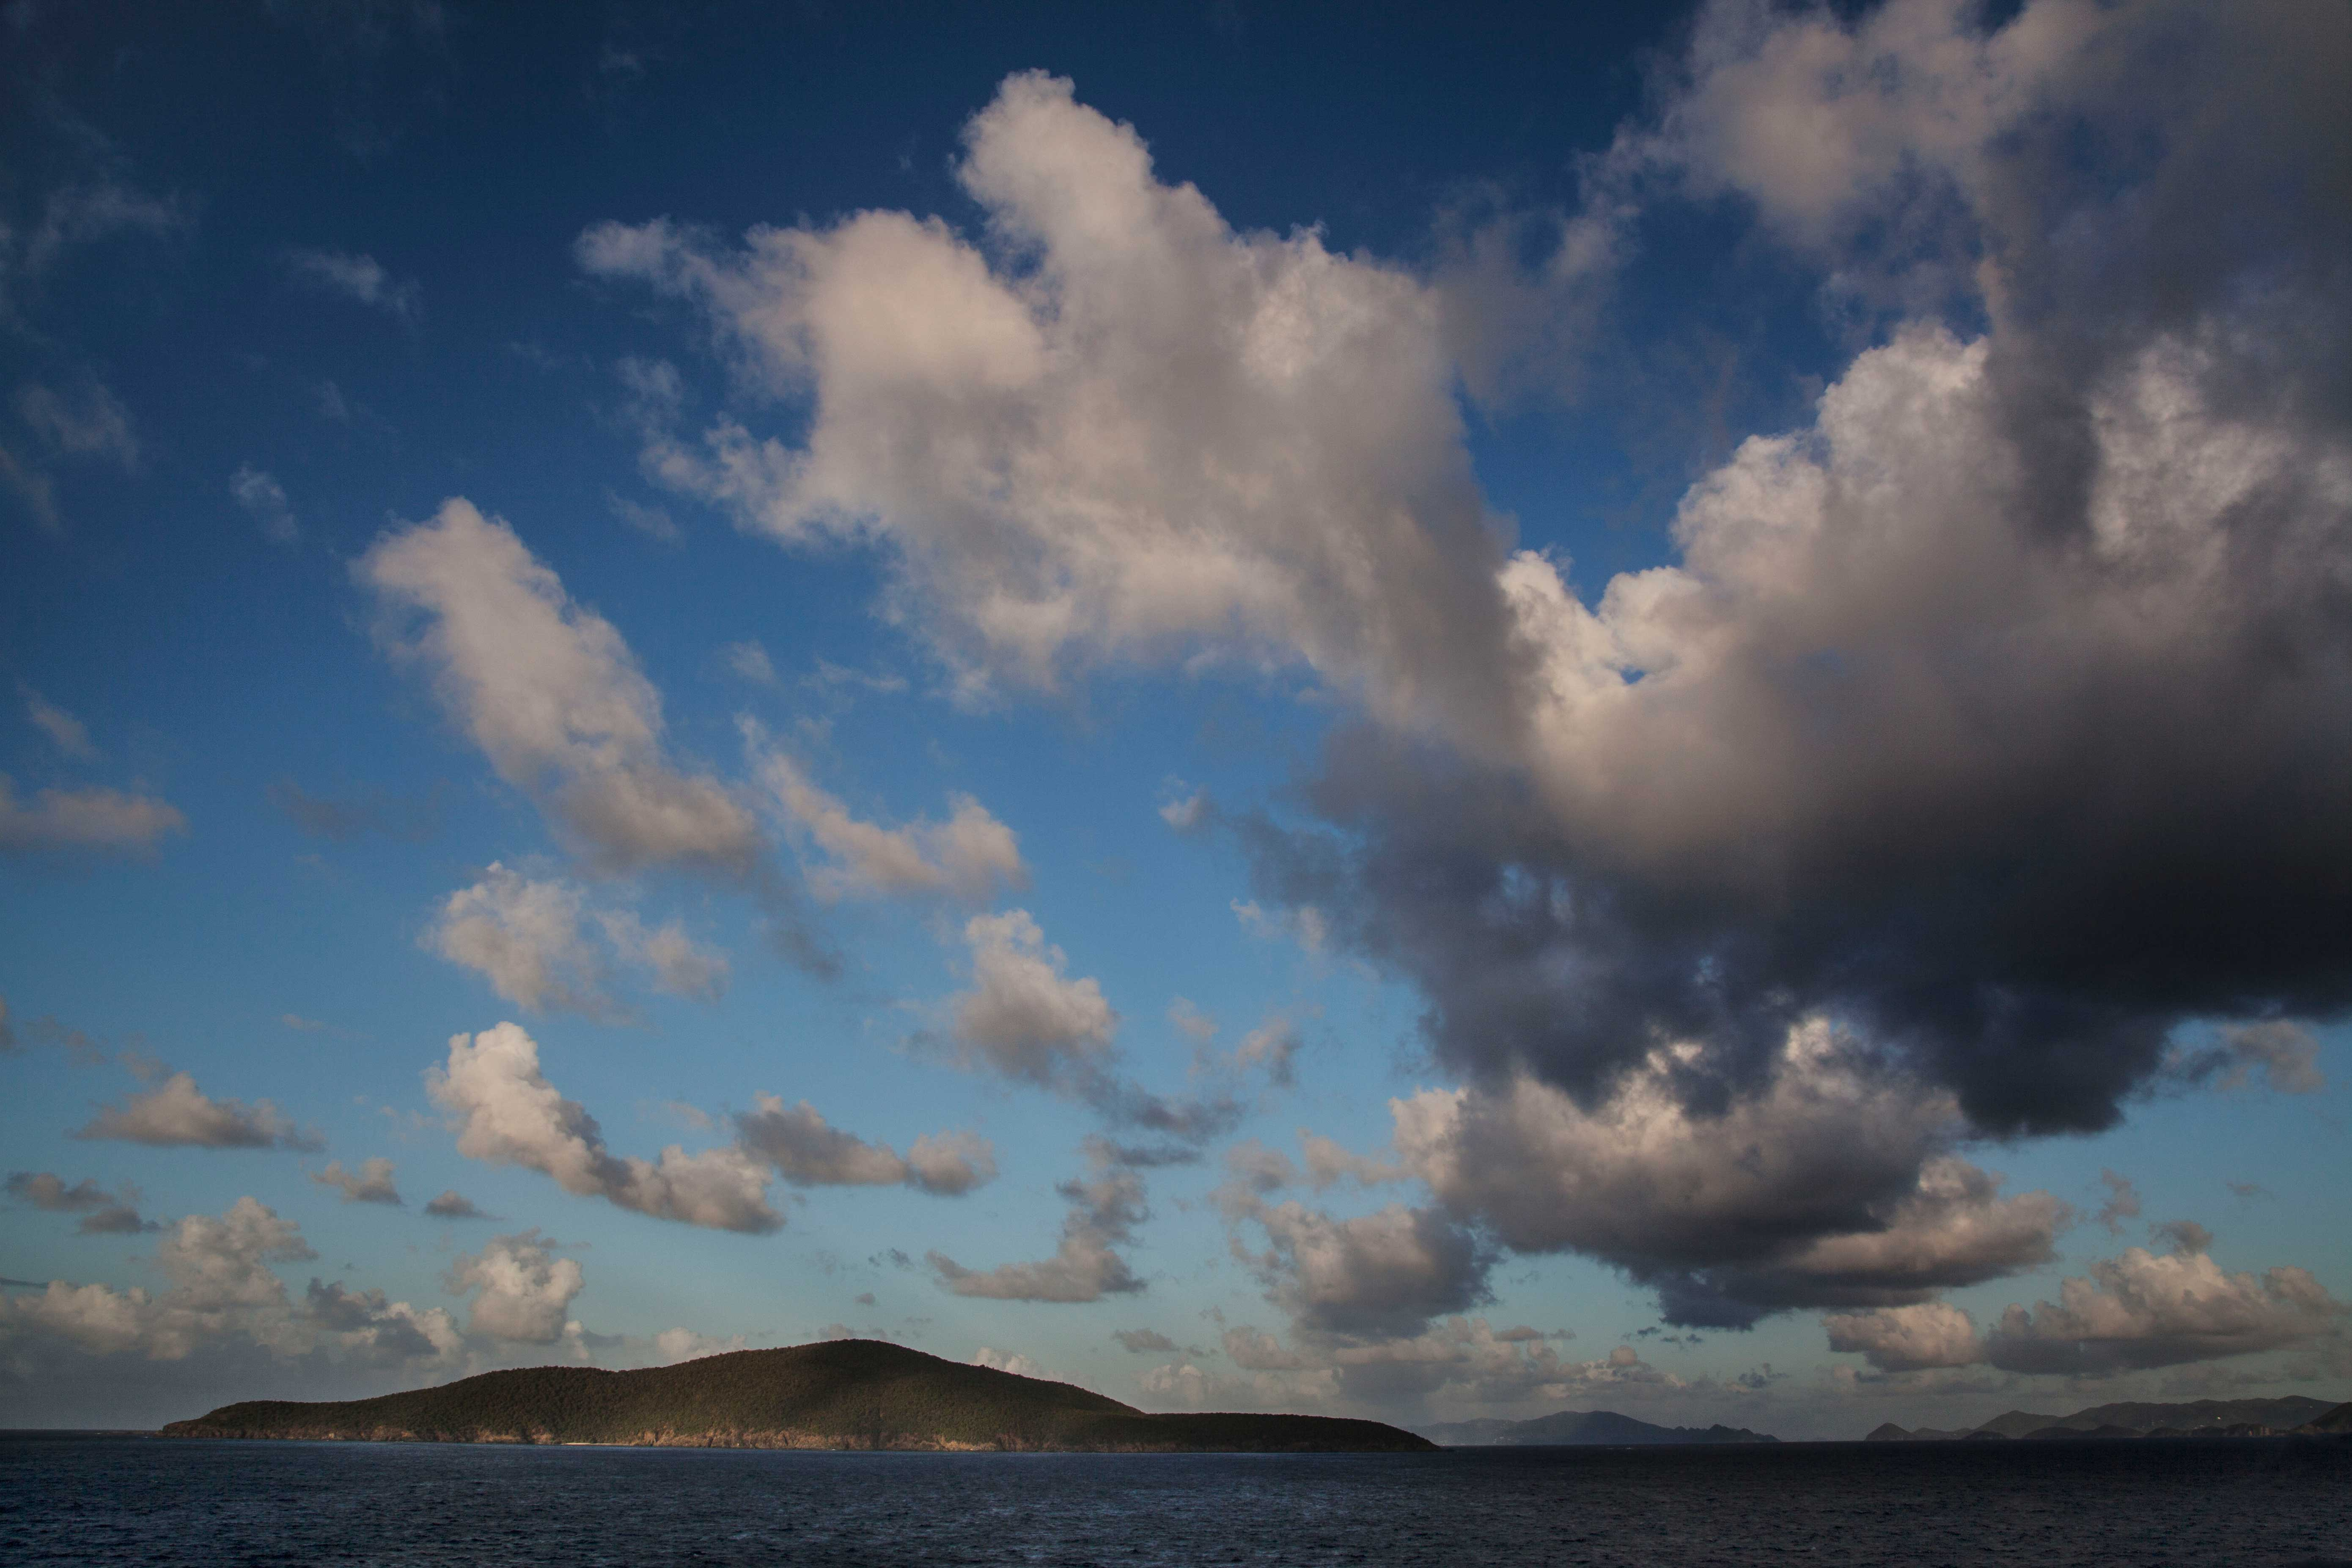 Water, islands and clouds at St. Thomas in the Virgin Islands in the Caribbean Sea